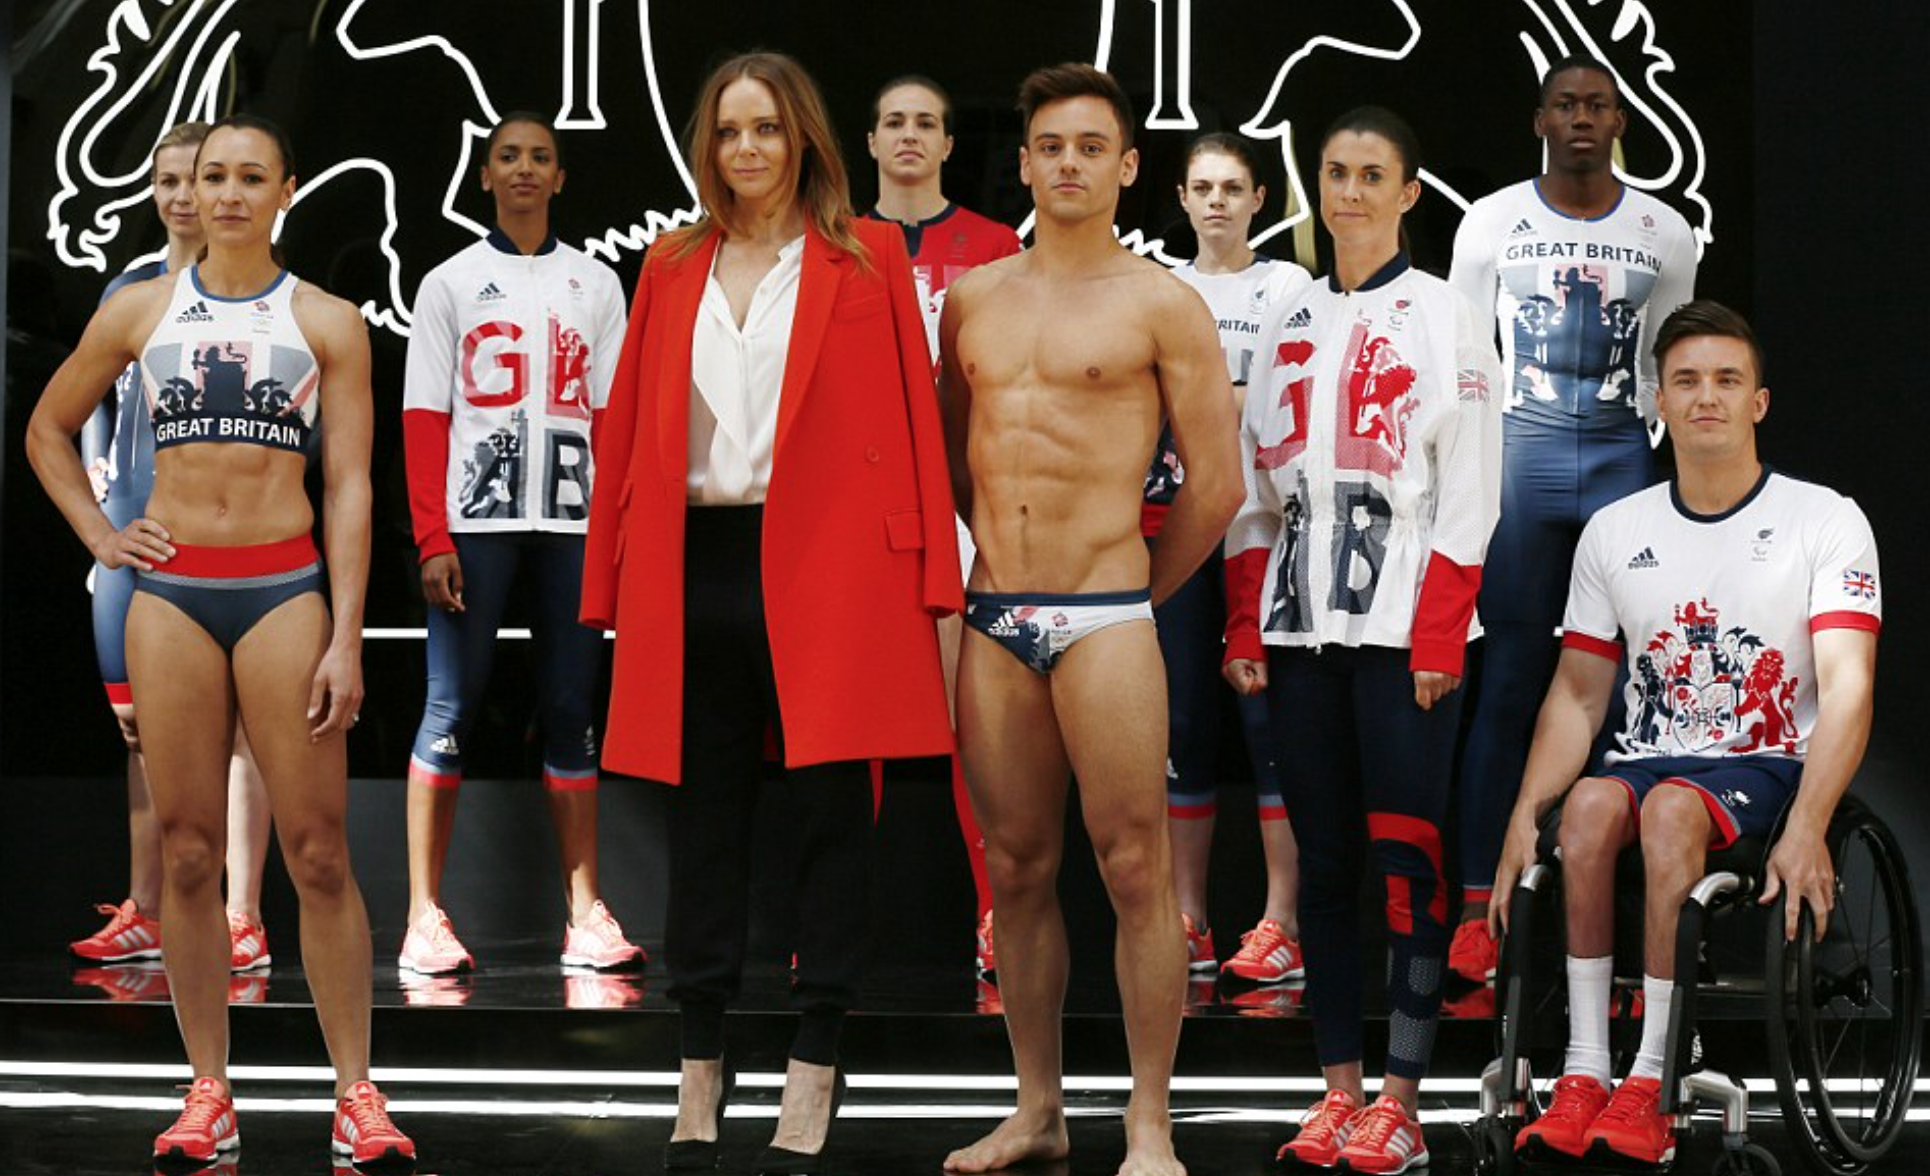 TEAM GB OLYMPICS KIT REVEALED